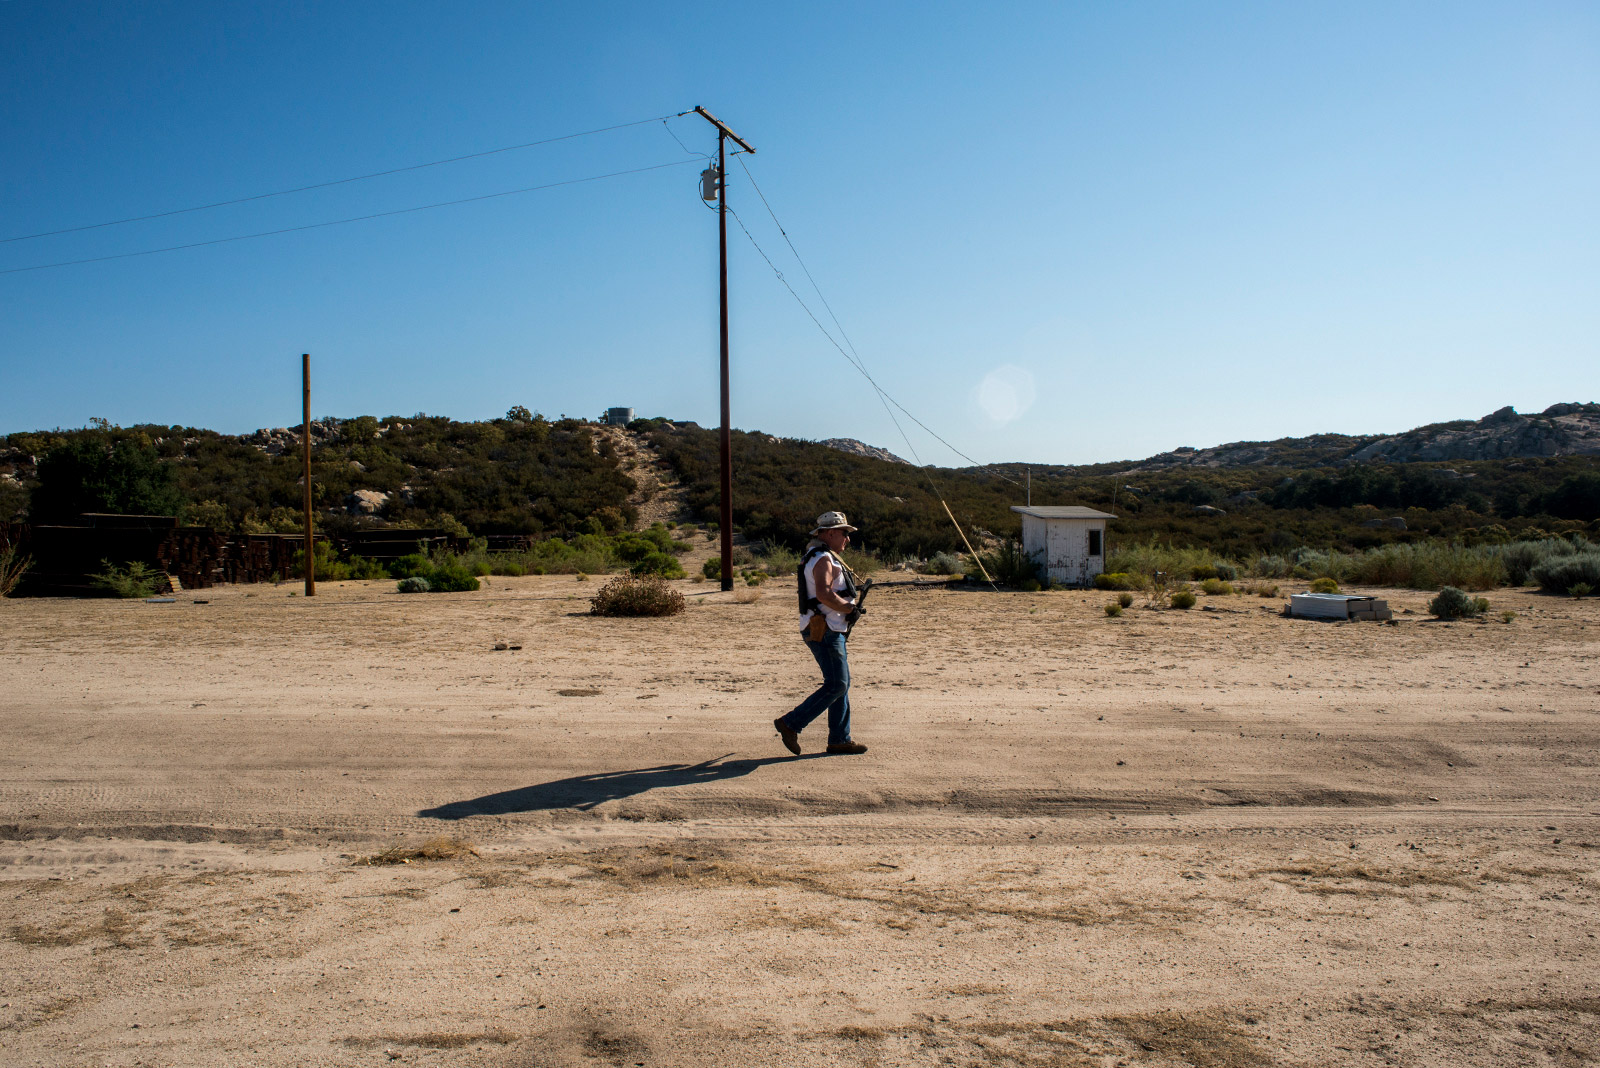 Bob Maupin, 78, walks along a dirt road on his property that leads from his home to the U.S.-Mexico border. Maupin carries a rifle, pistol and wears a bulletproof vest while walking his property on Aug. 30, 2017. <em>(Brandon Quester/inewsource)</em>